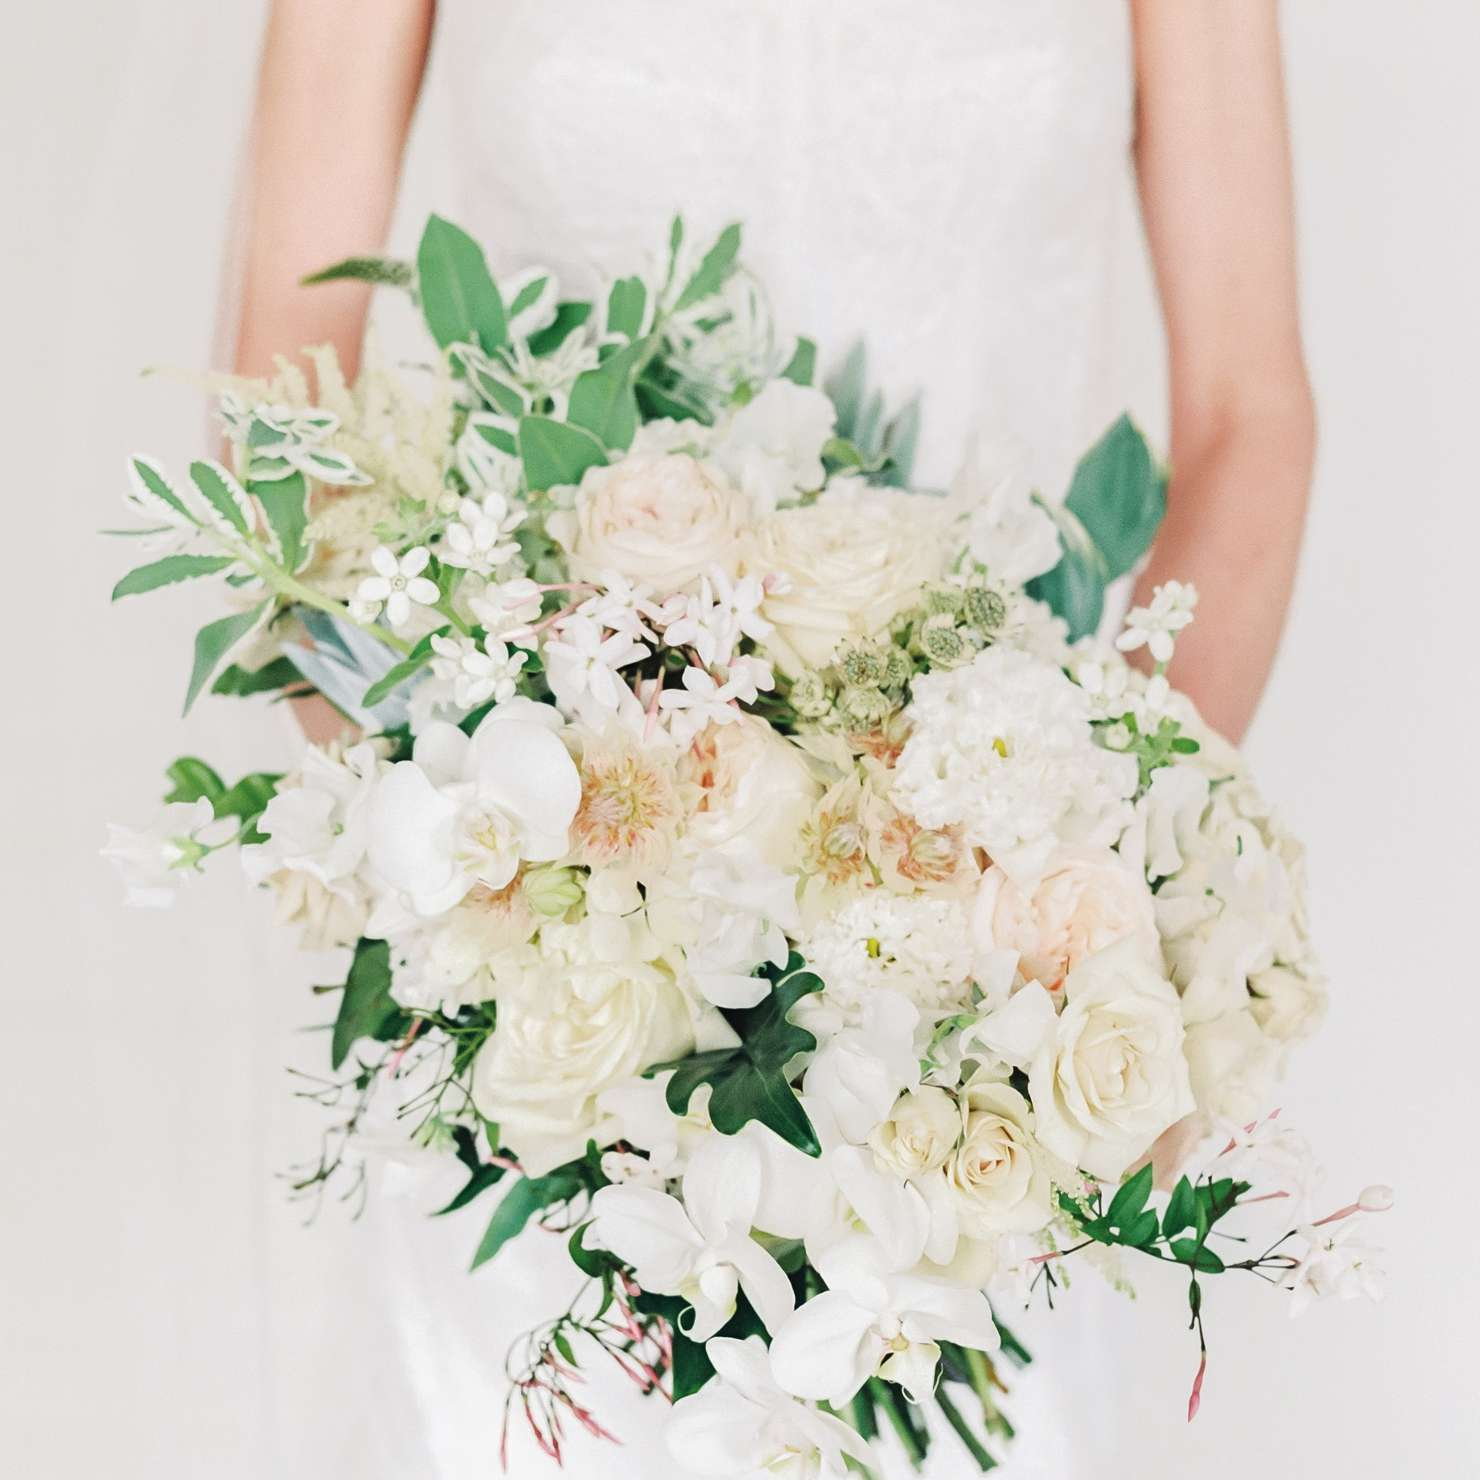 Bride holding an all-white bouquet of garden roses, orchids, flowering jasmine vine, tweedia, and various foliage